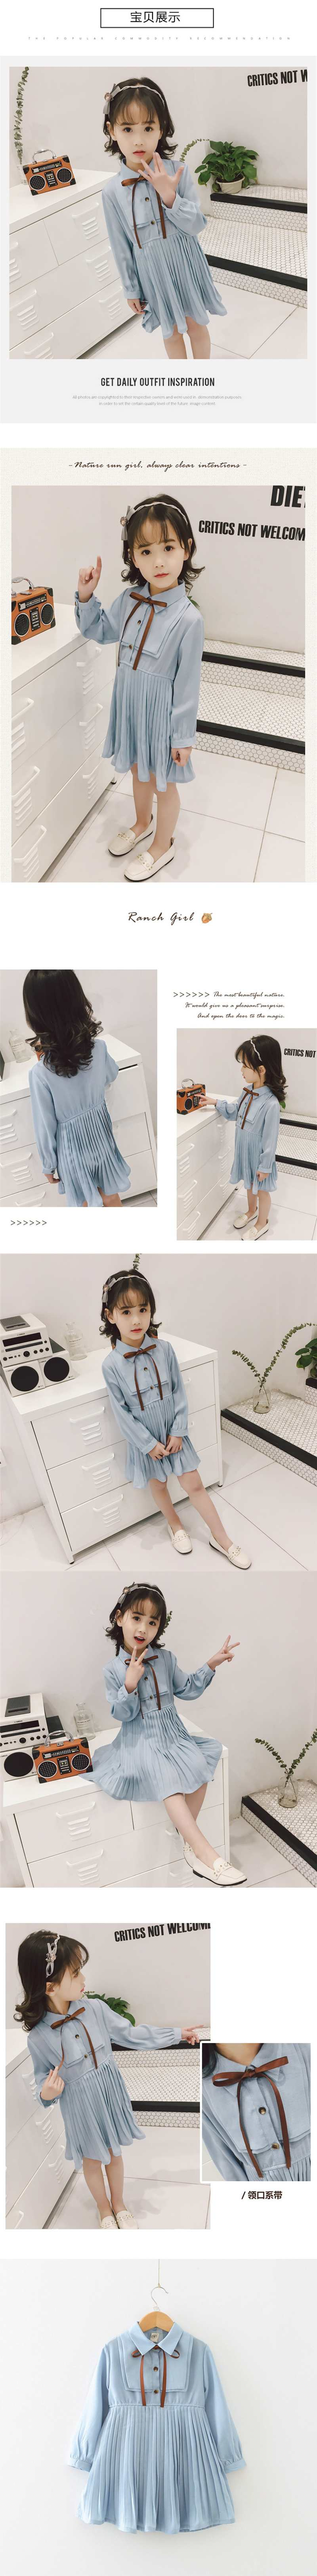 Humor Bear Baby Girls Dress 2020 School Student Brand New Spring & Autumn Bow Long Sleeve Dress Kids Clothing Princess Dresses